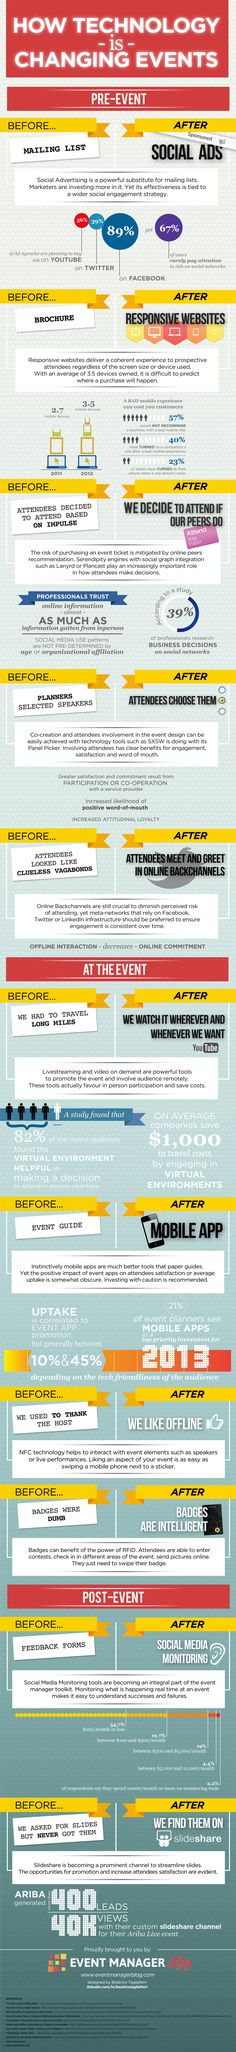 Infographic: How Technology Is Changing Events | SocialTables.com | Event Planning Software